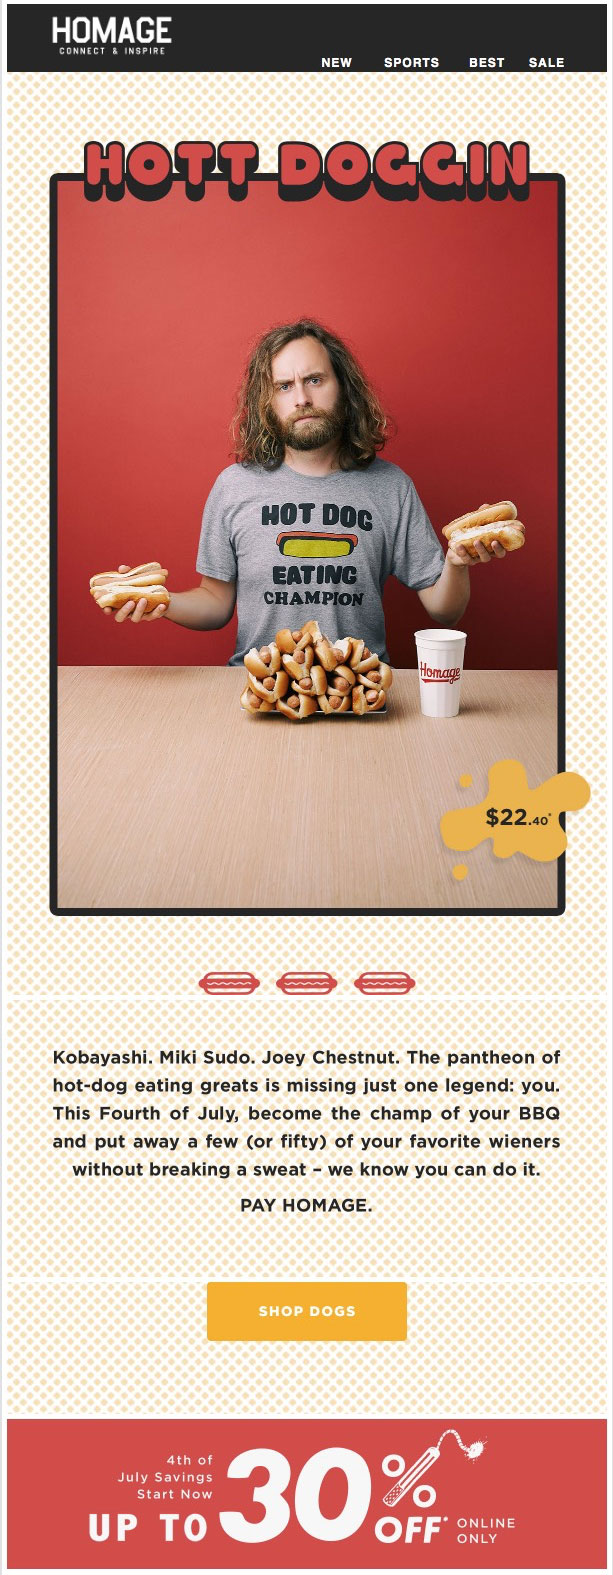 Homage finds a niche aspect of the Fourth of July for its marketing email, in this case the hot dog eating contest.